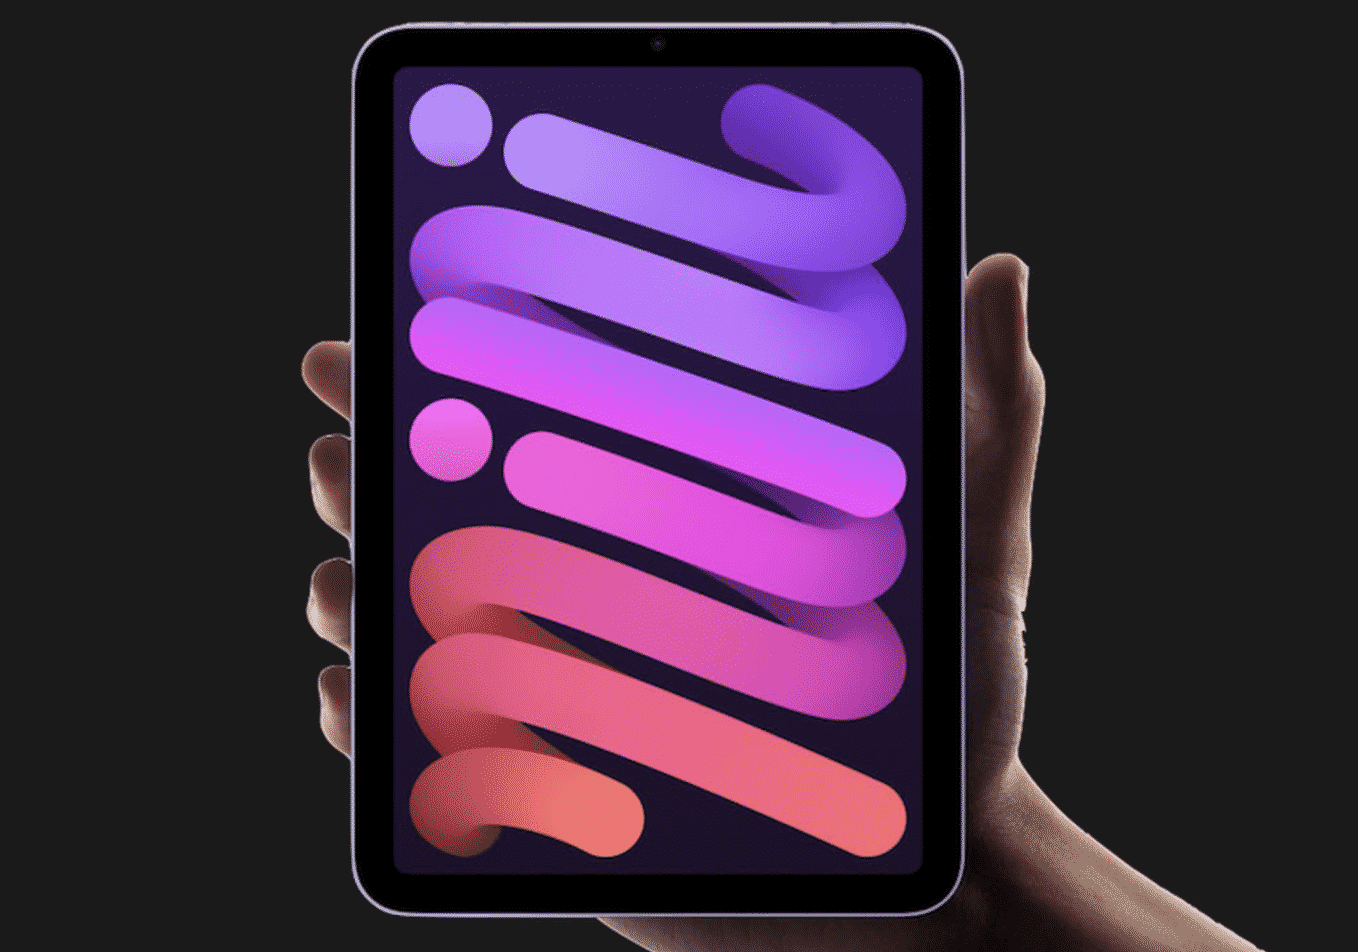 Latest iPad Mini doesn't get faster mmWave 5G technology